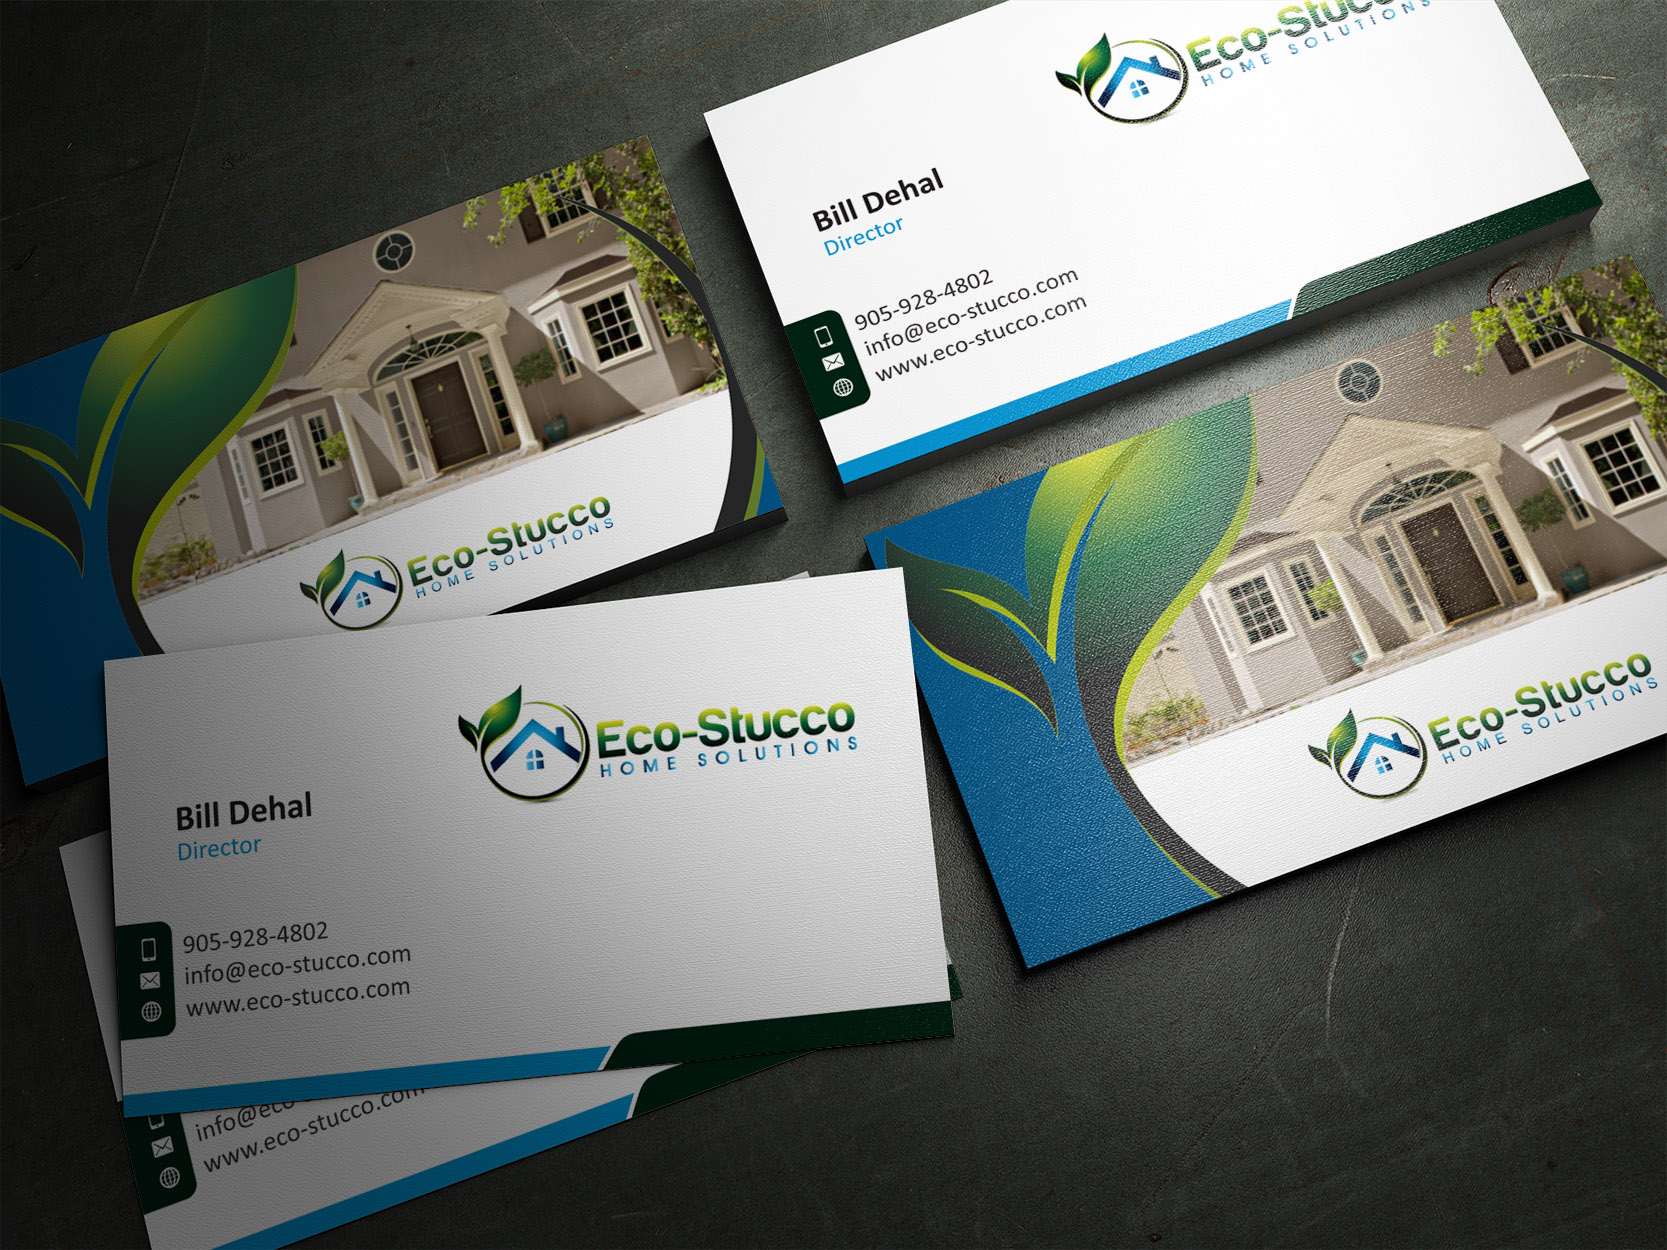 Business Card Design By Muhammad Aslam   Entry No. 43 In The Business Card  Design